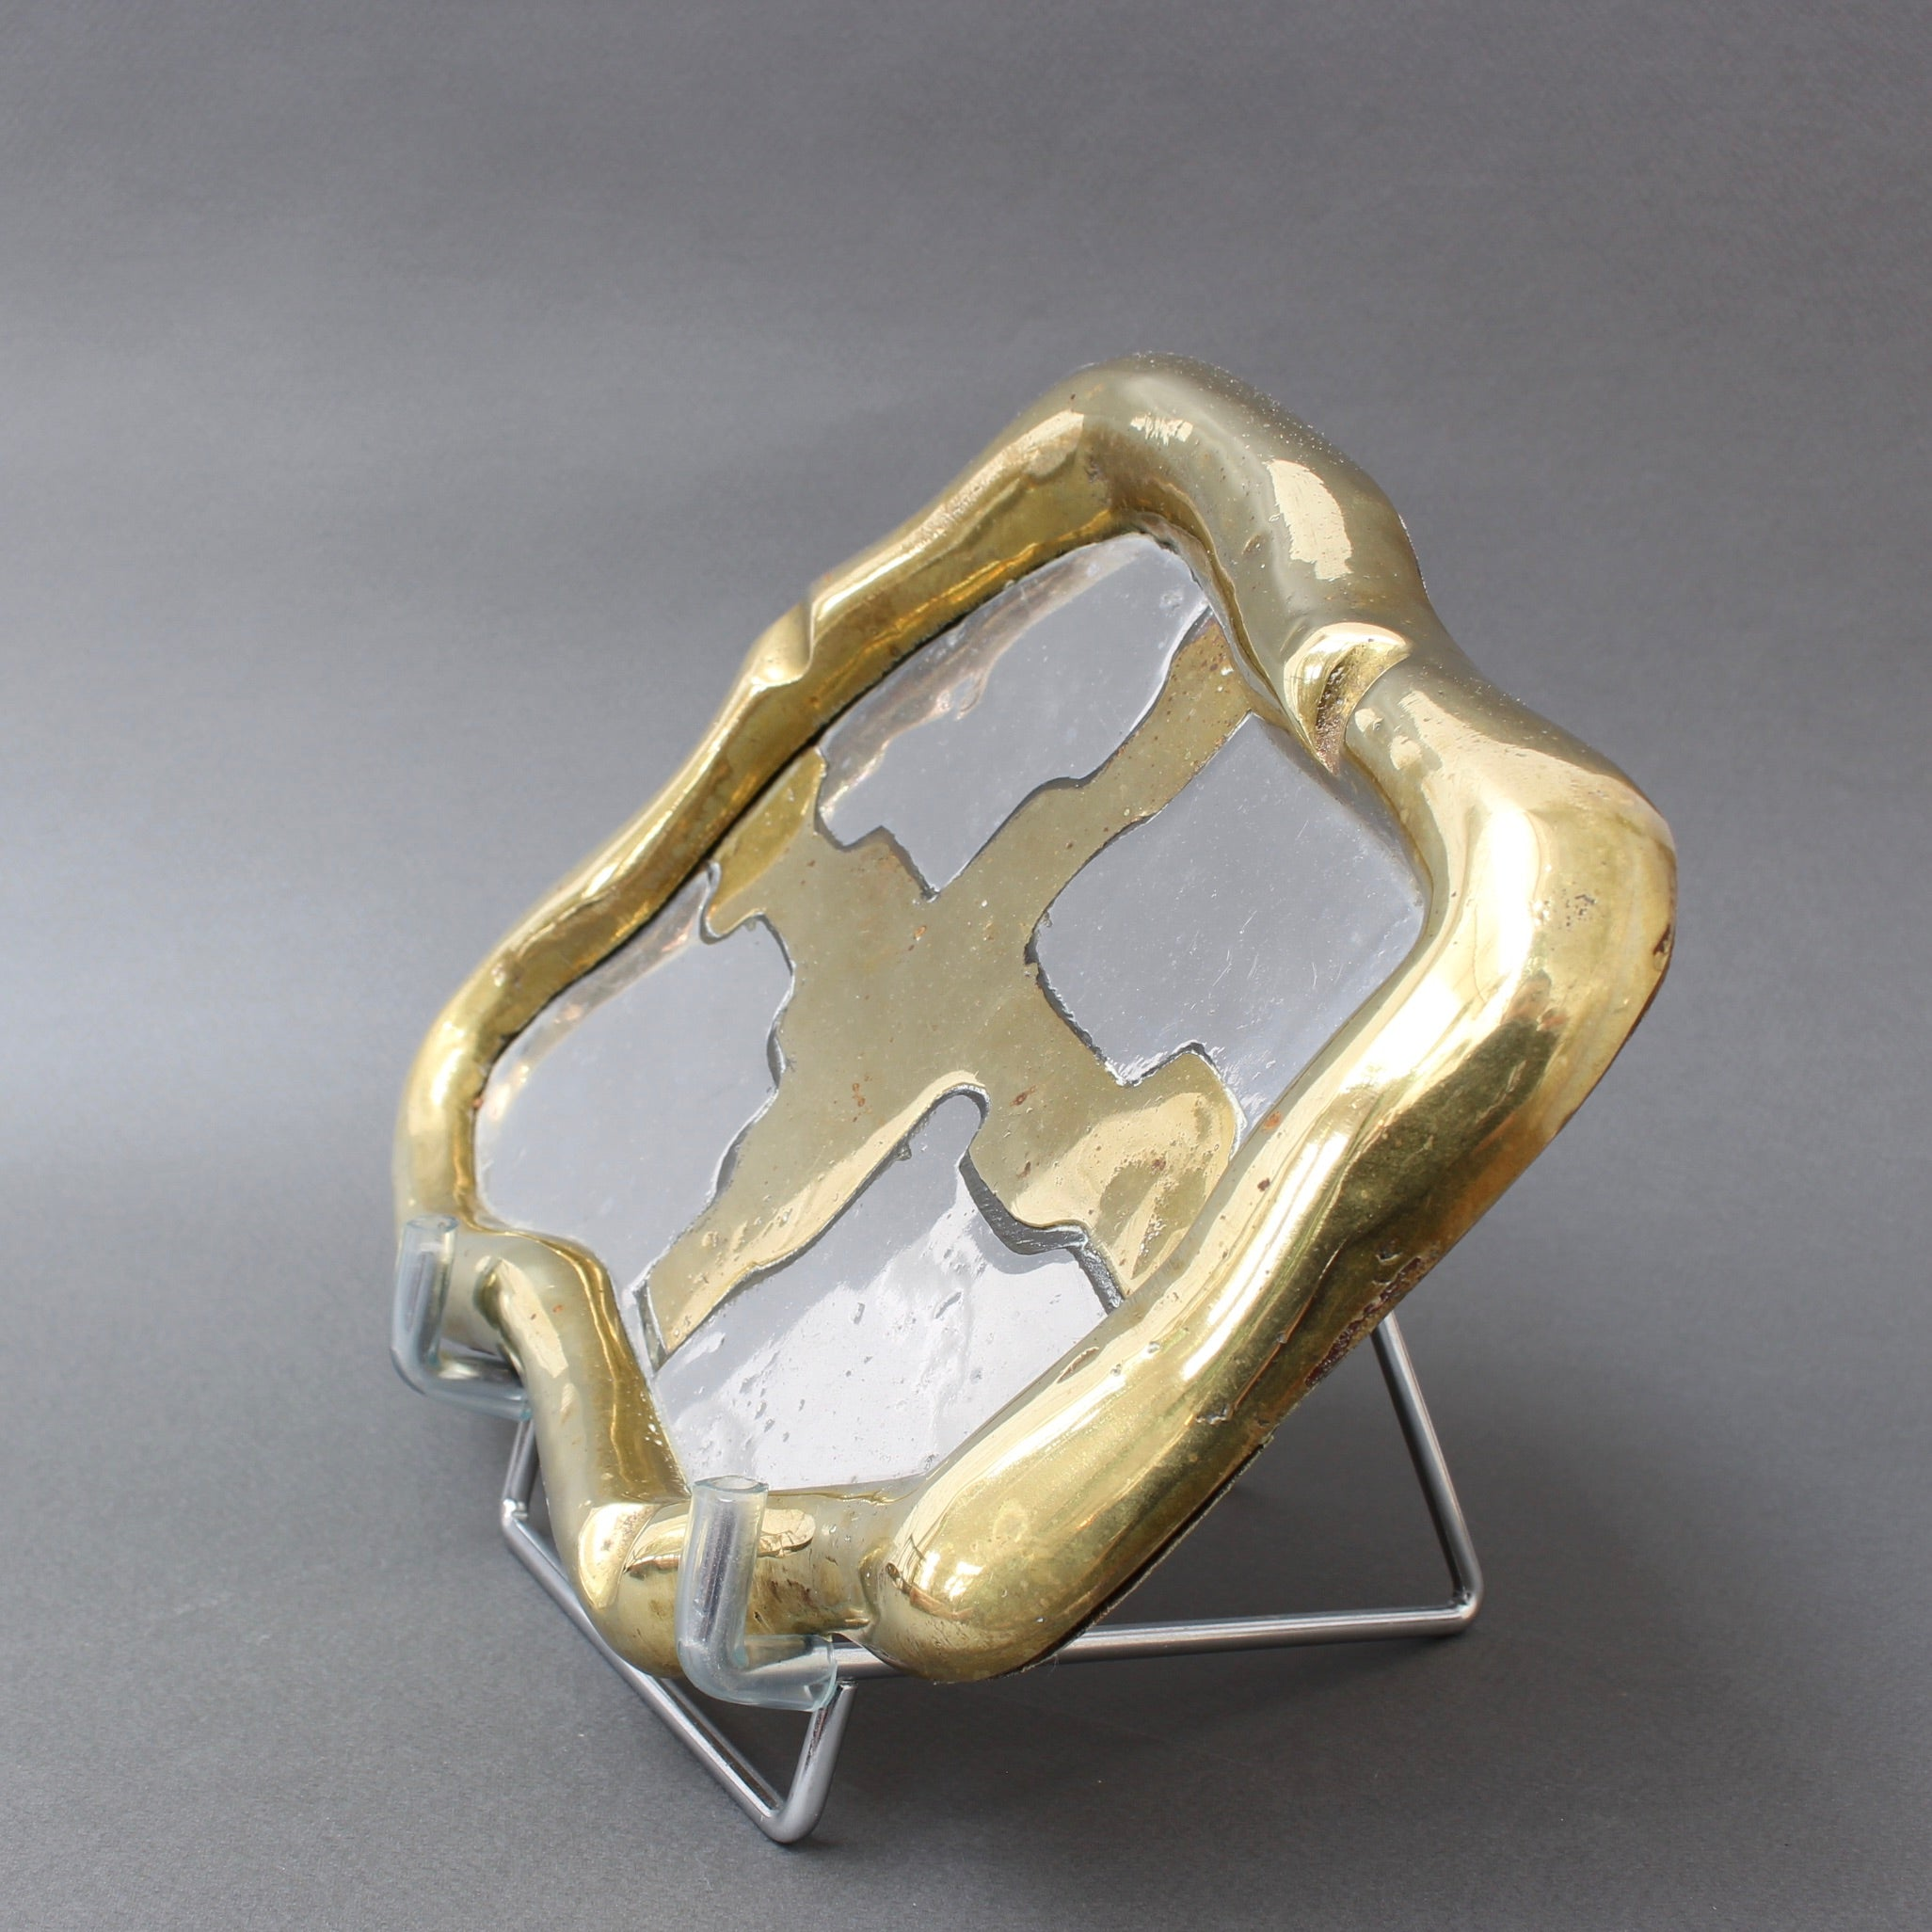 Aluminium and Brass Vide-Poche / Ashtray Attributed to David Marshall (c. 1980s)